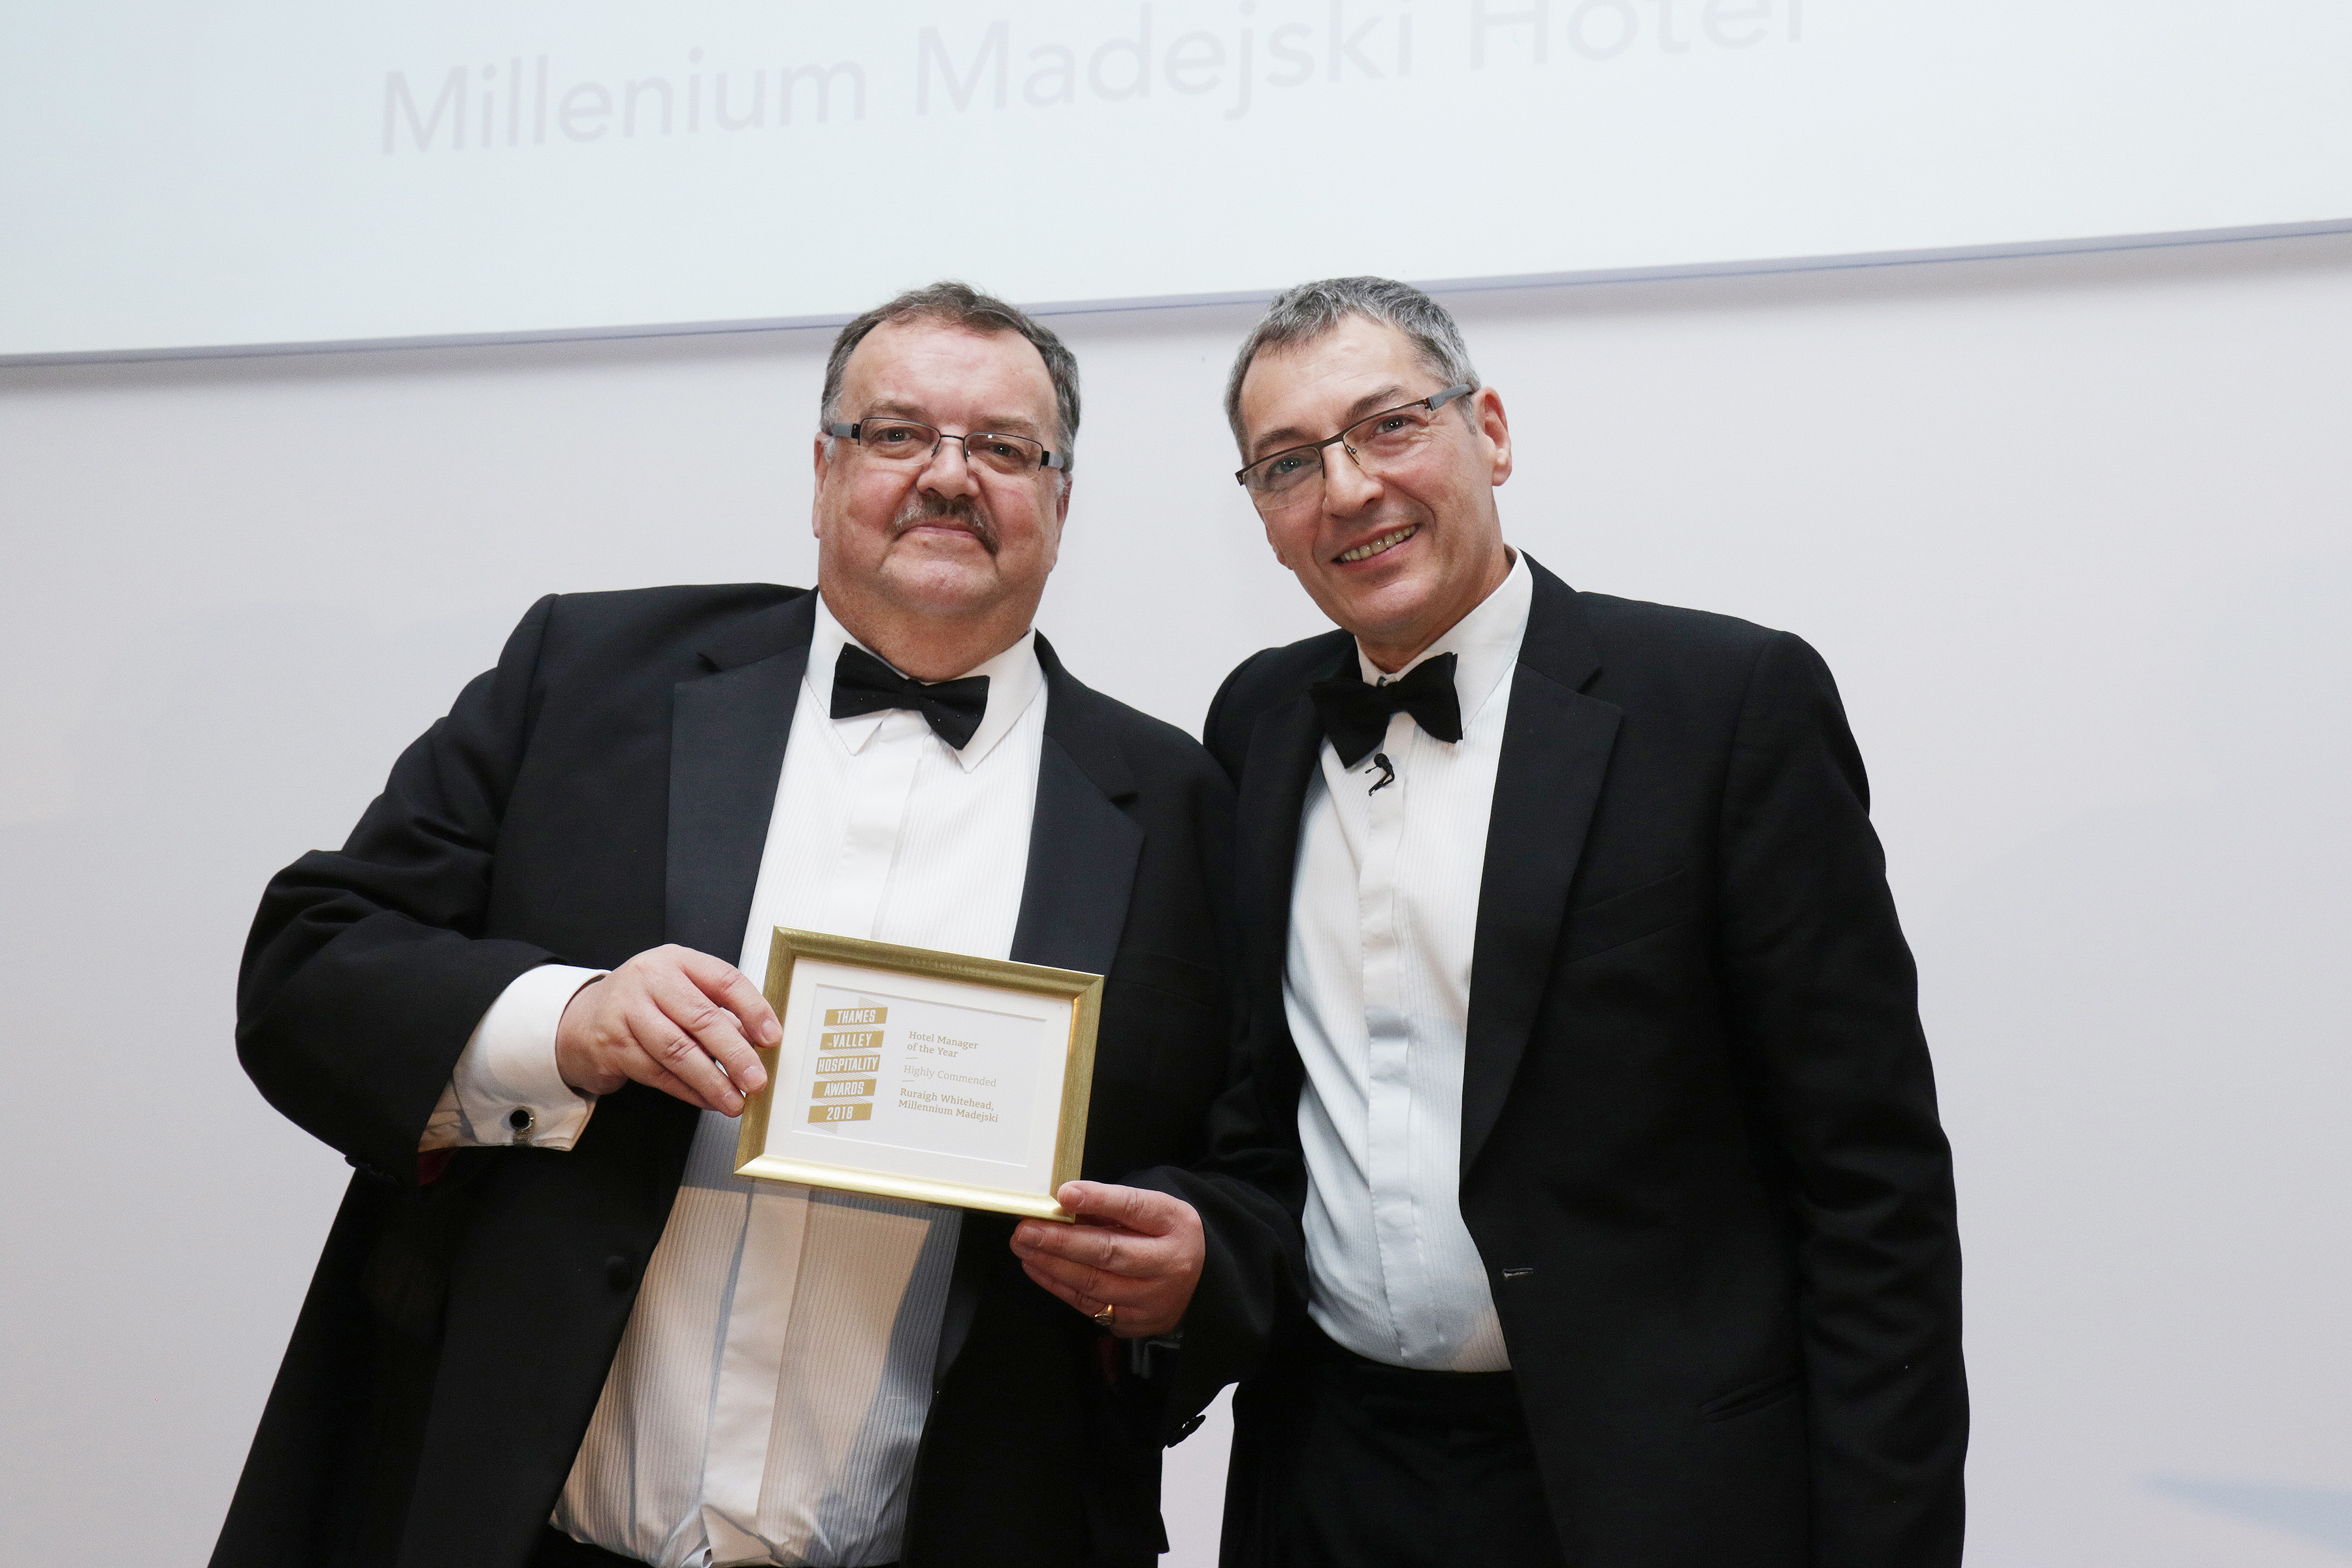 Ruraigh Whitehead of the Millennium Madejski Hotel is Highly Commended in Hotel Manager of the Year